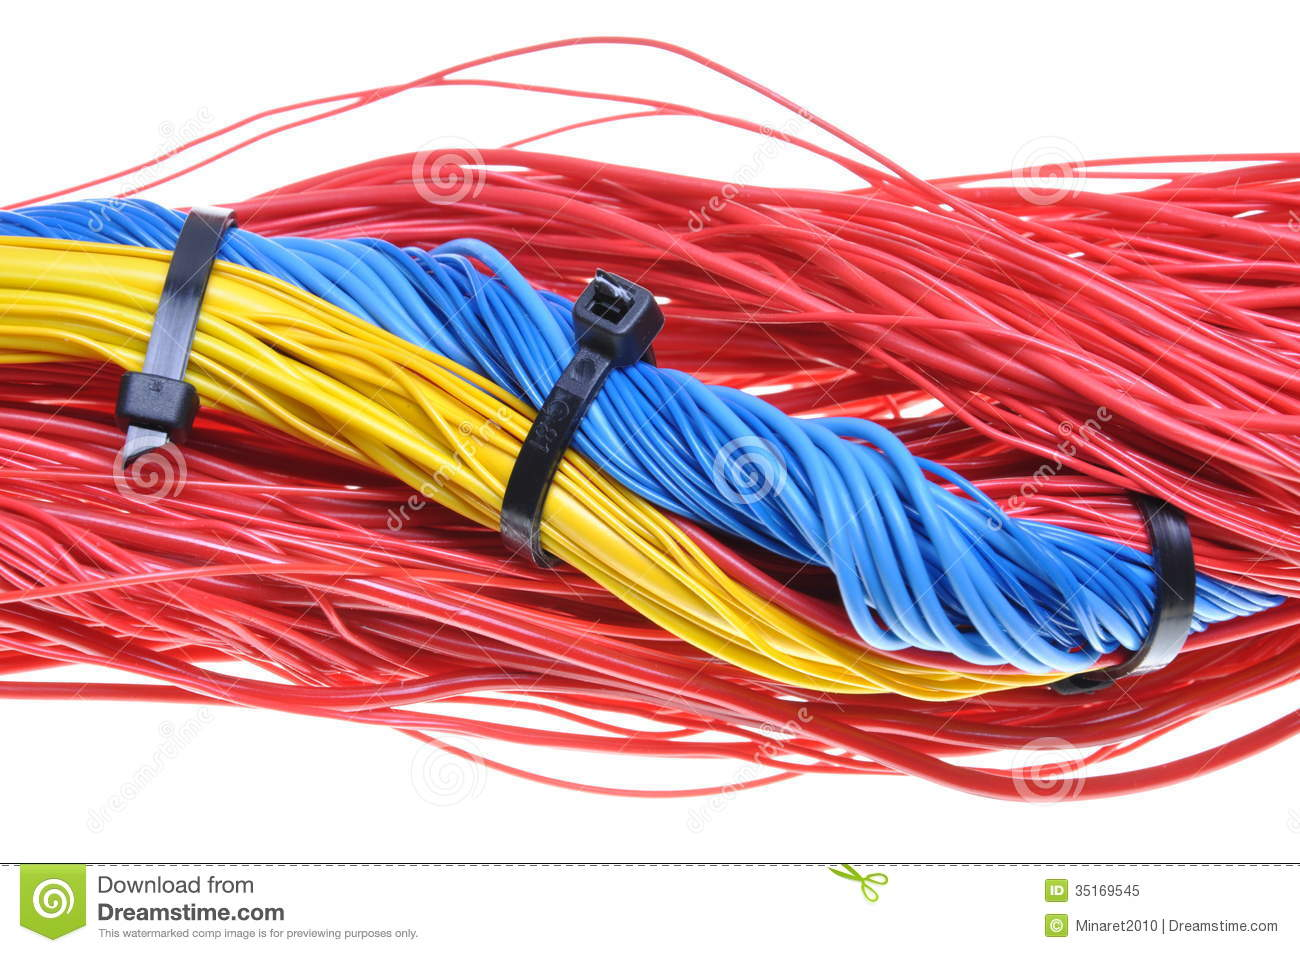 hight resolution of electrical wires with cable ties